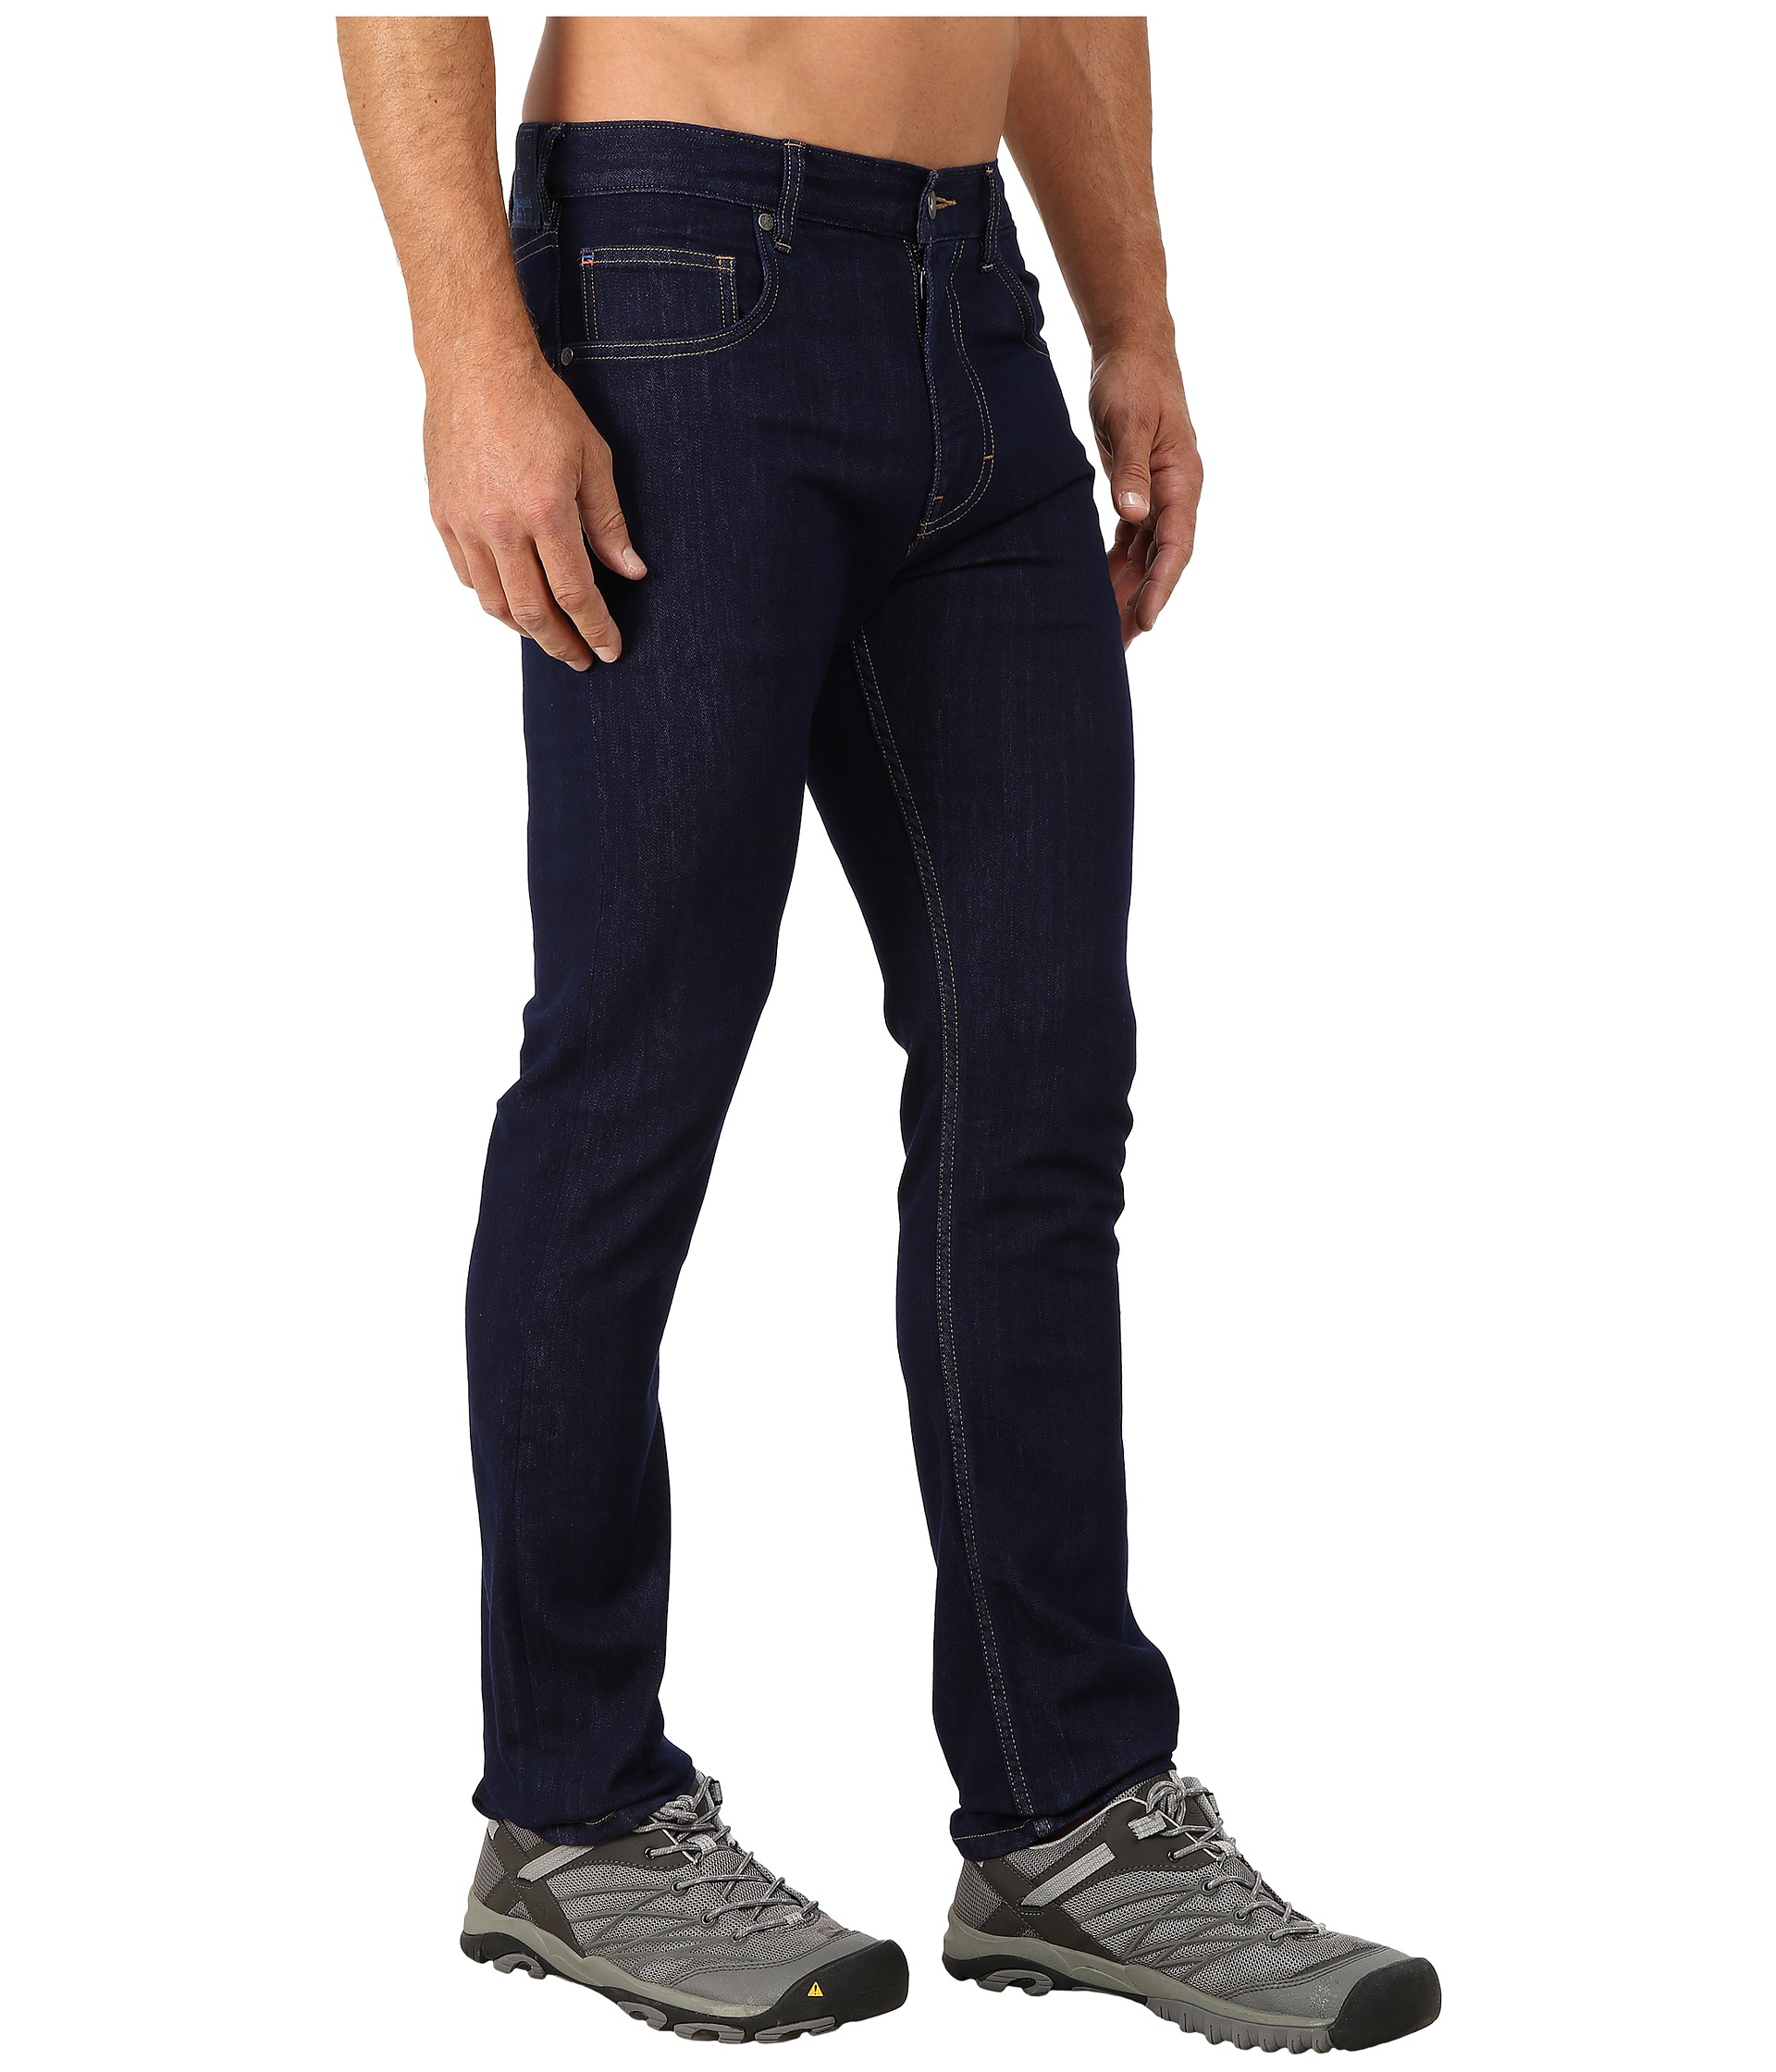 74f4d8ec889d Patagonia Performance Straight Fit Jeans - Long in Blue for Men - Lyst